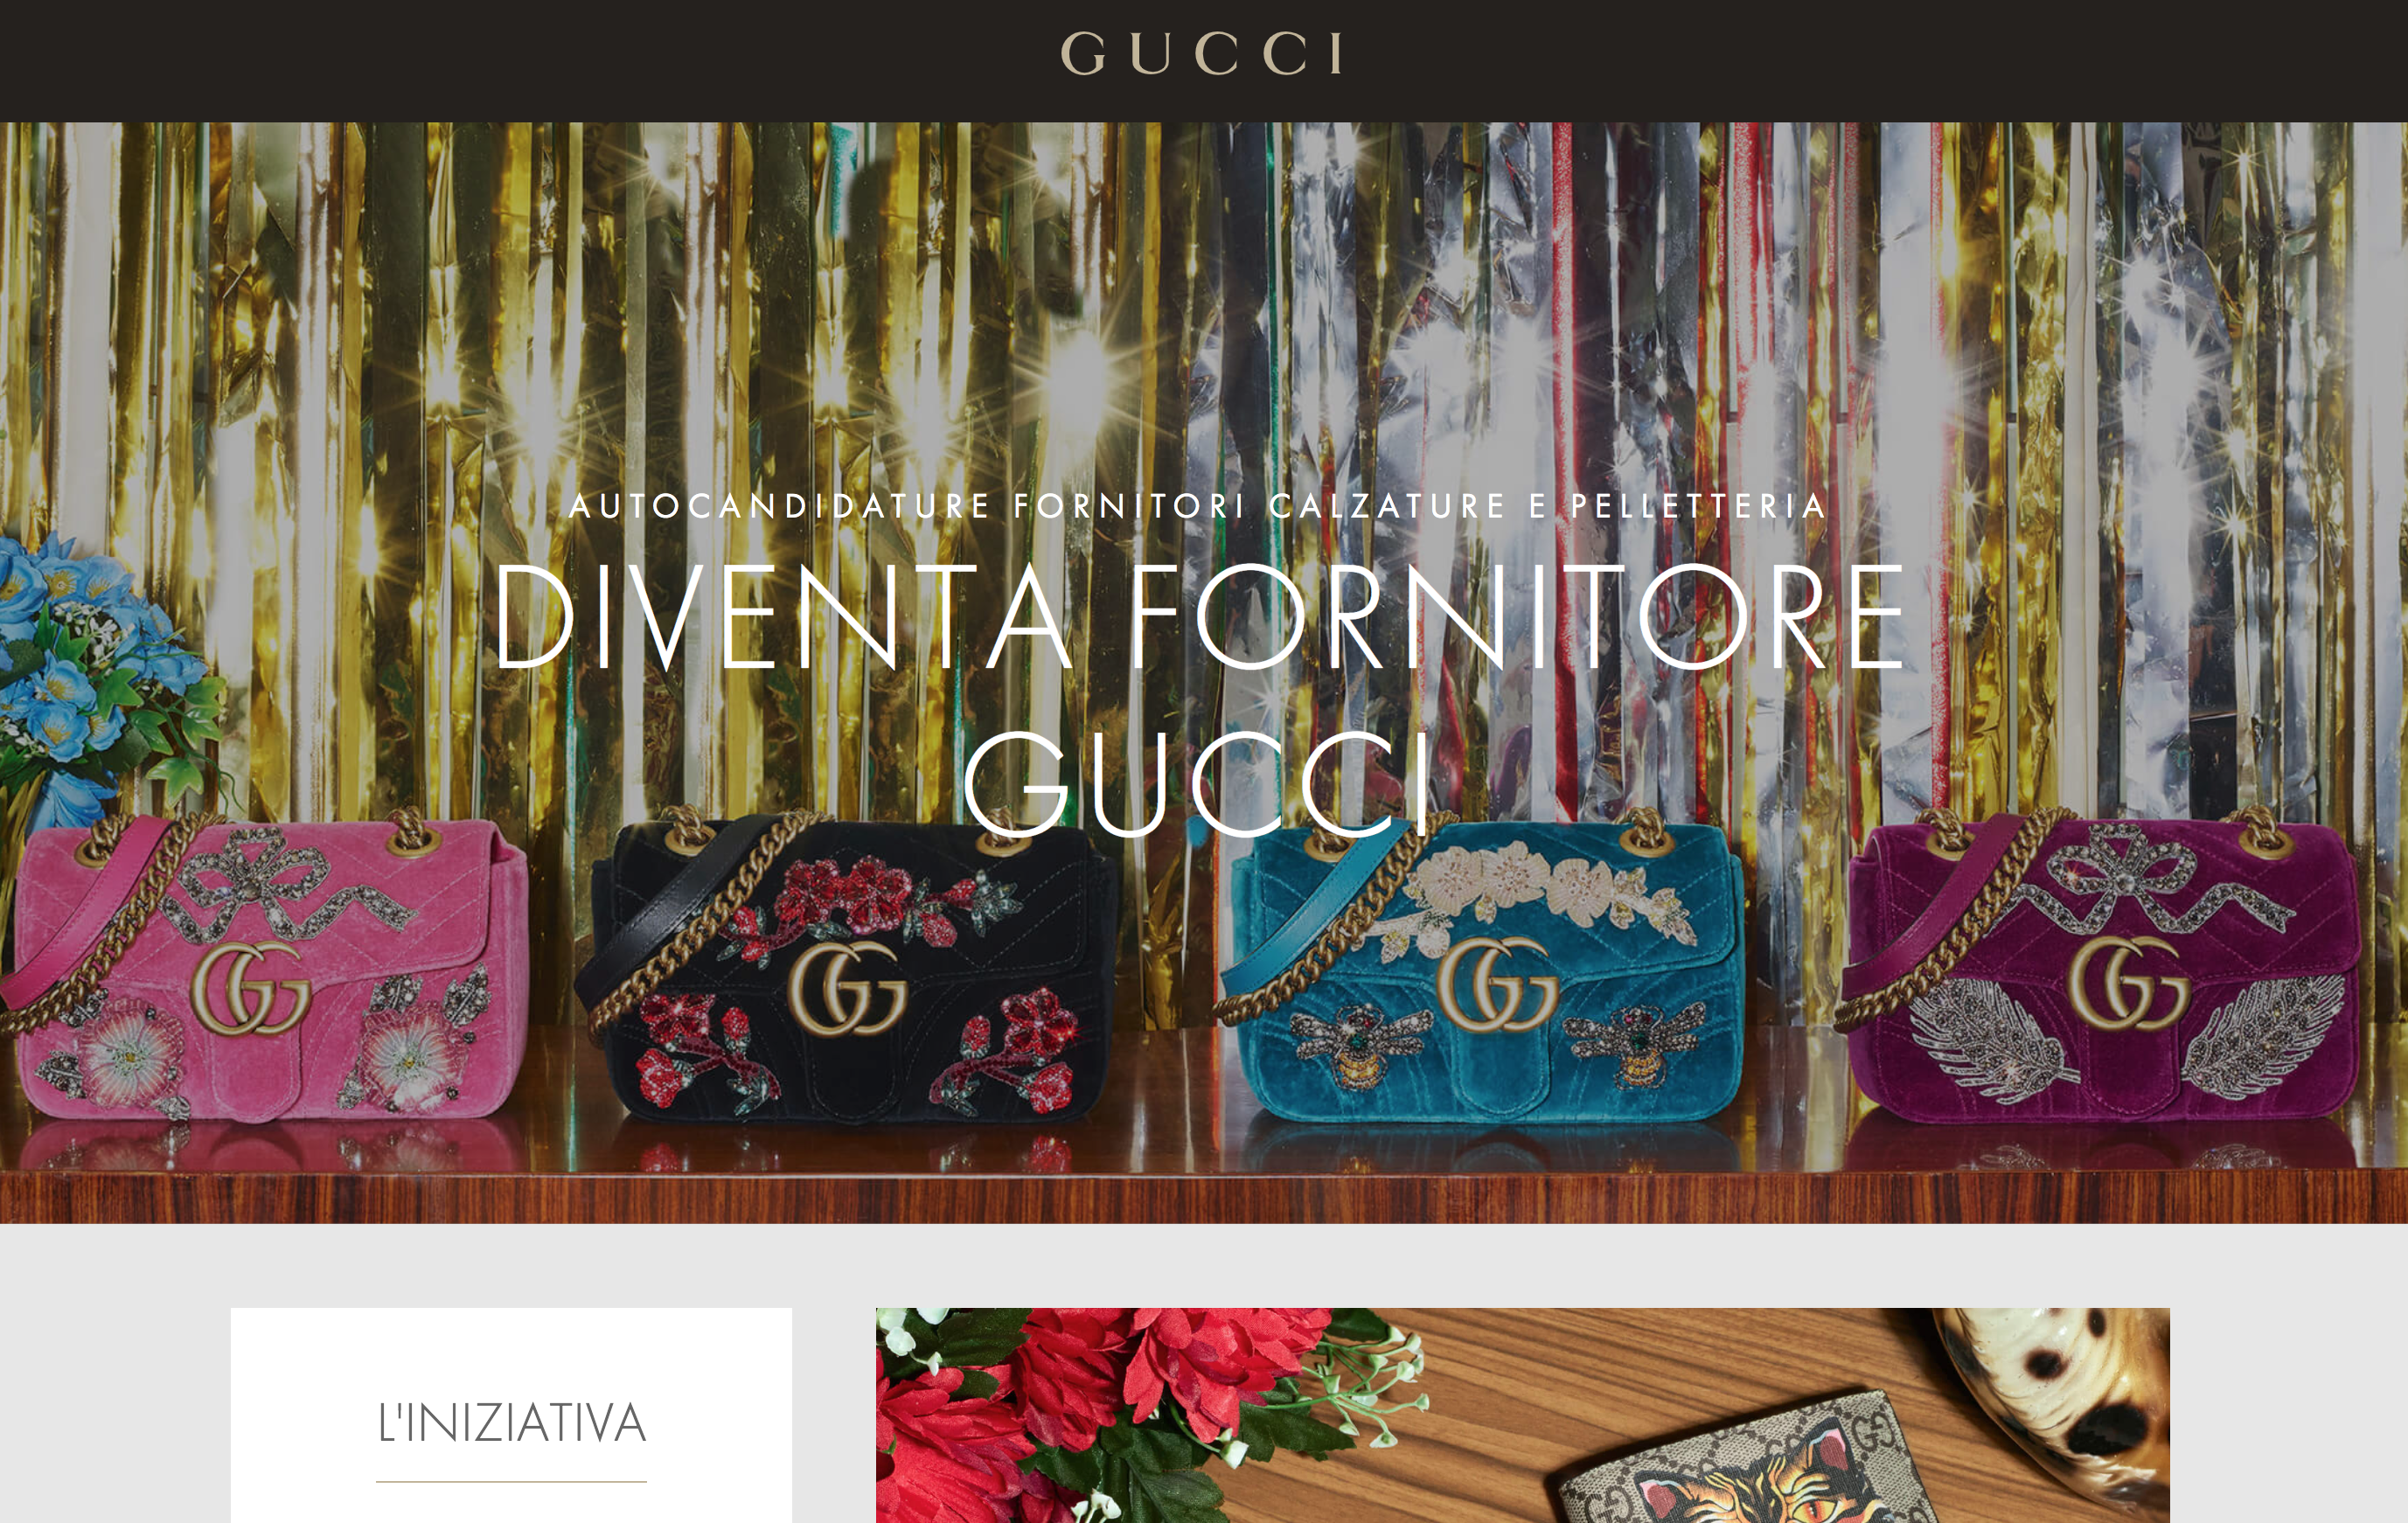 The Italian luxury good brand goes big launching their new range